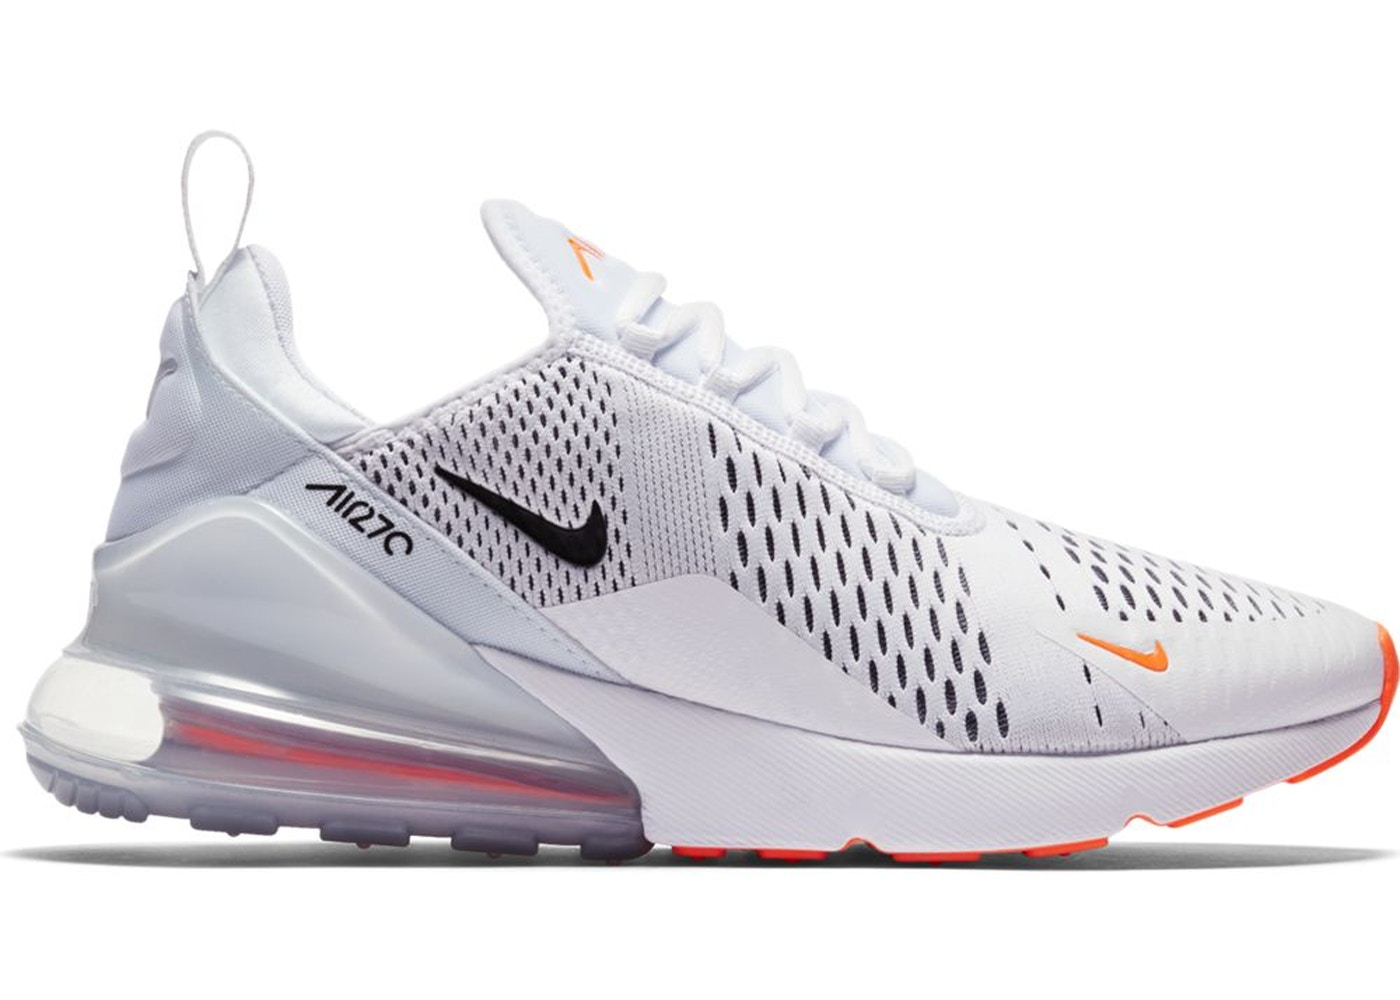 low priced 07594 addae Air Max 270 White Black Total Orange